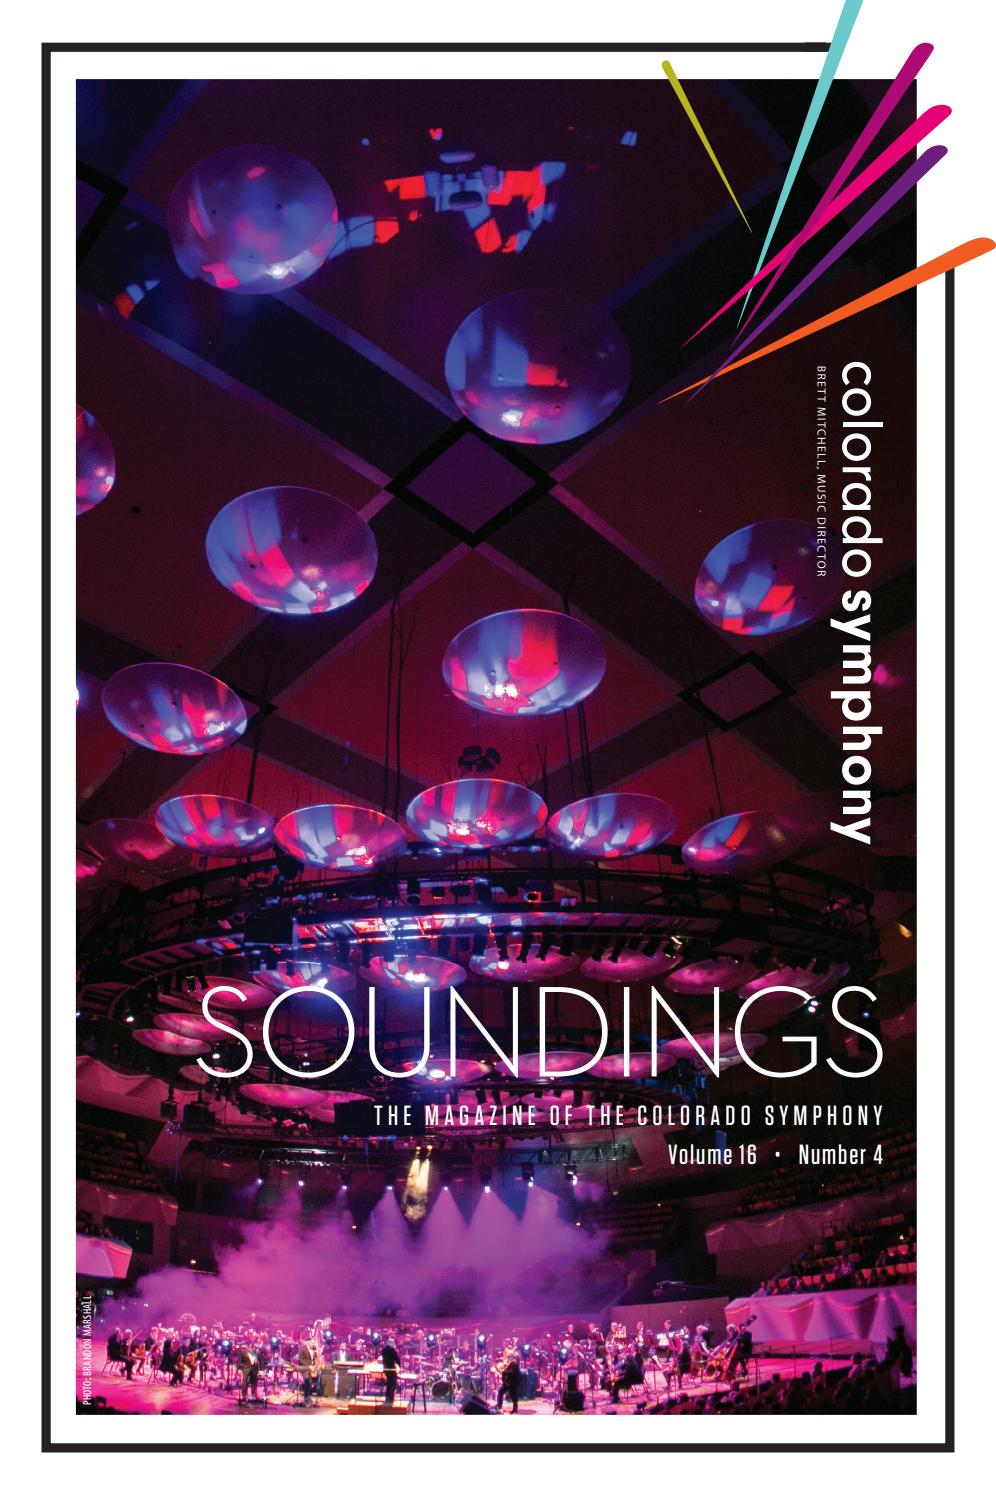 Soundings Magazine Winter 2019, March 29-31, 2019 by The